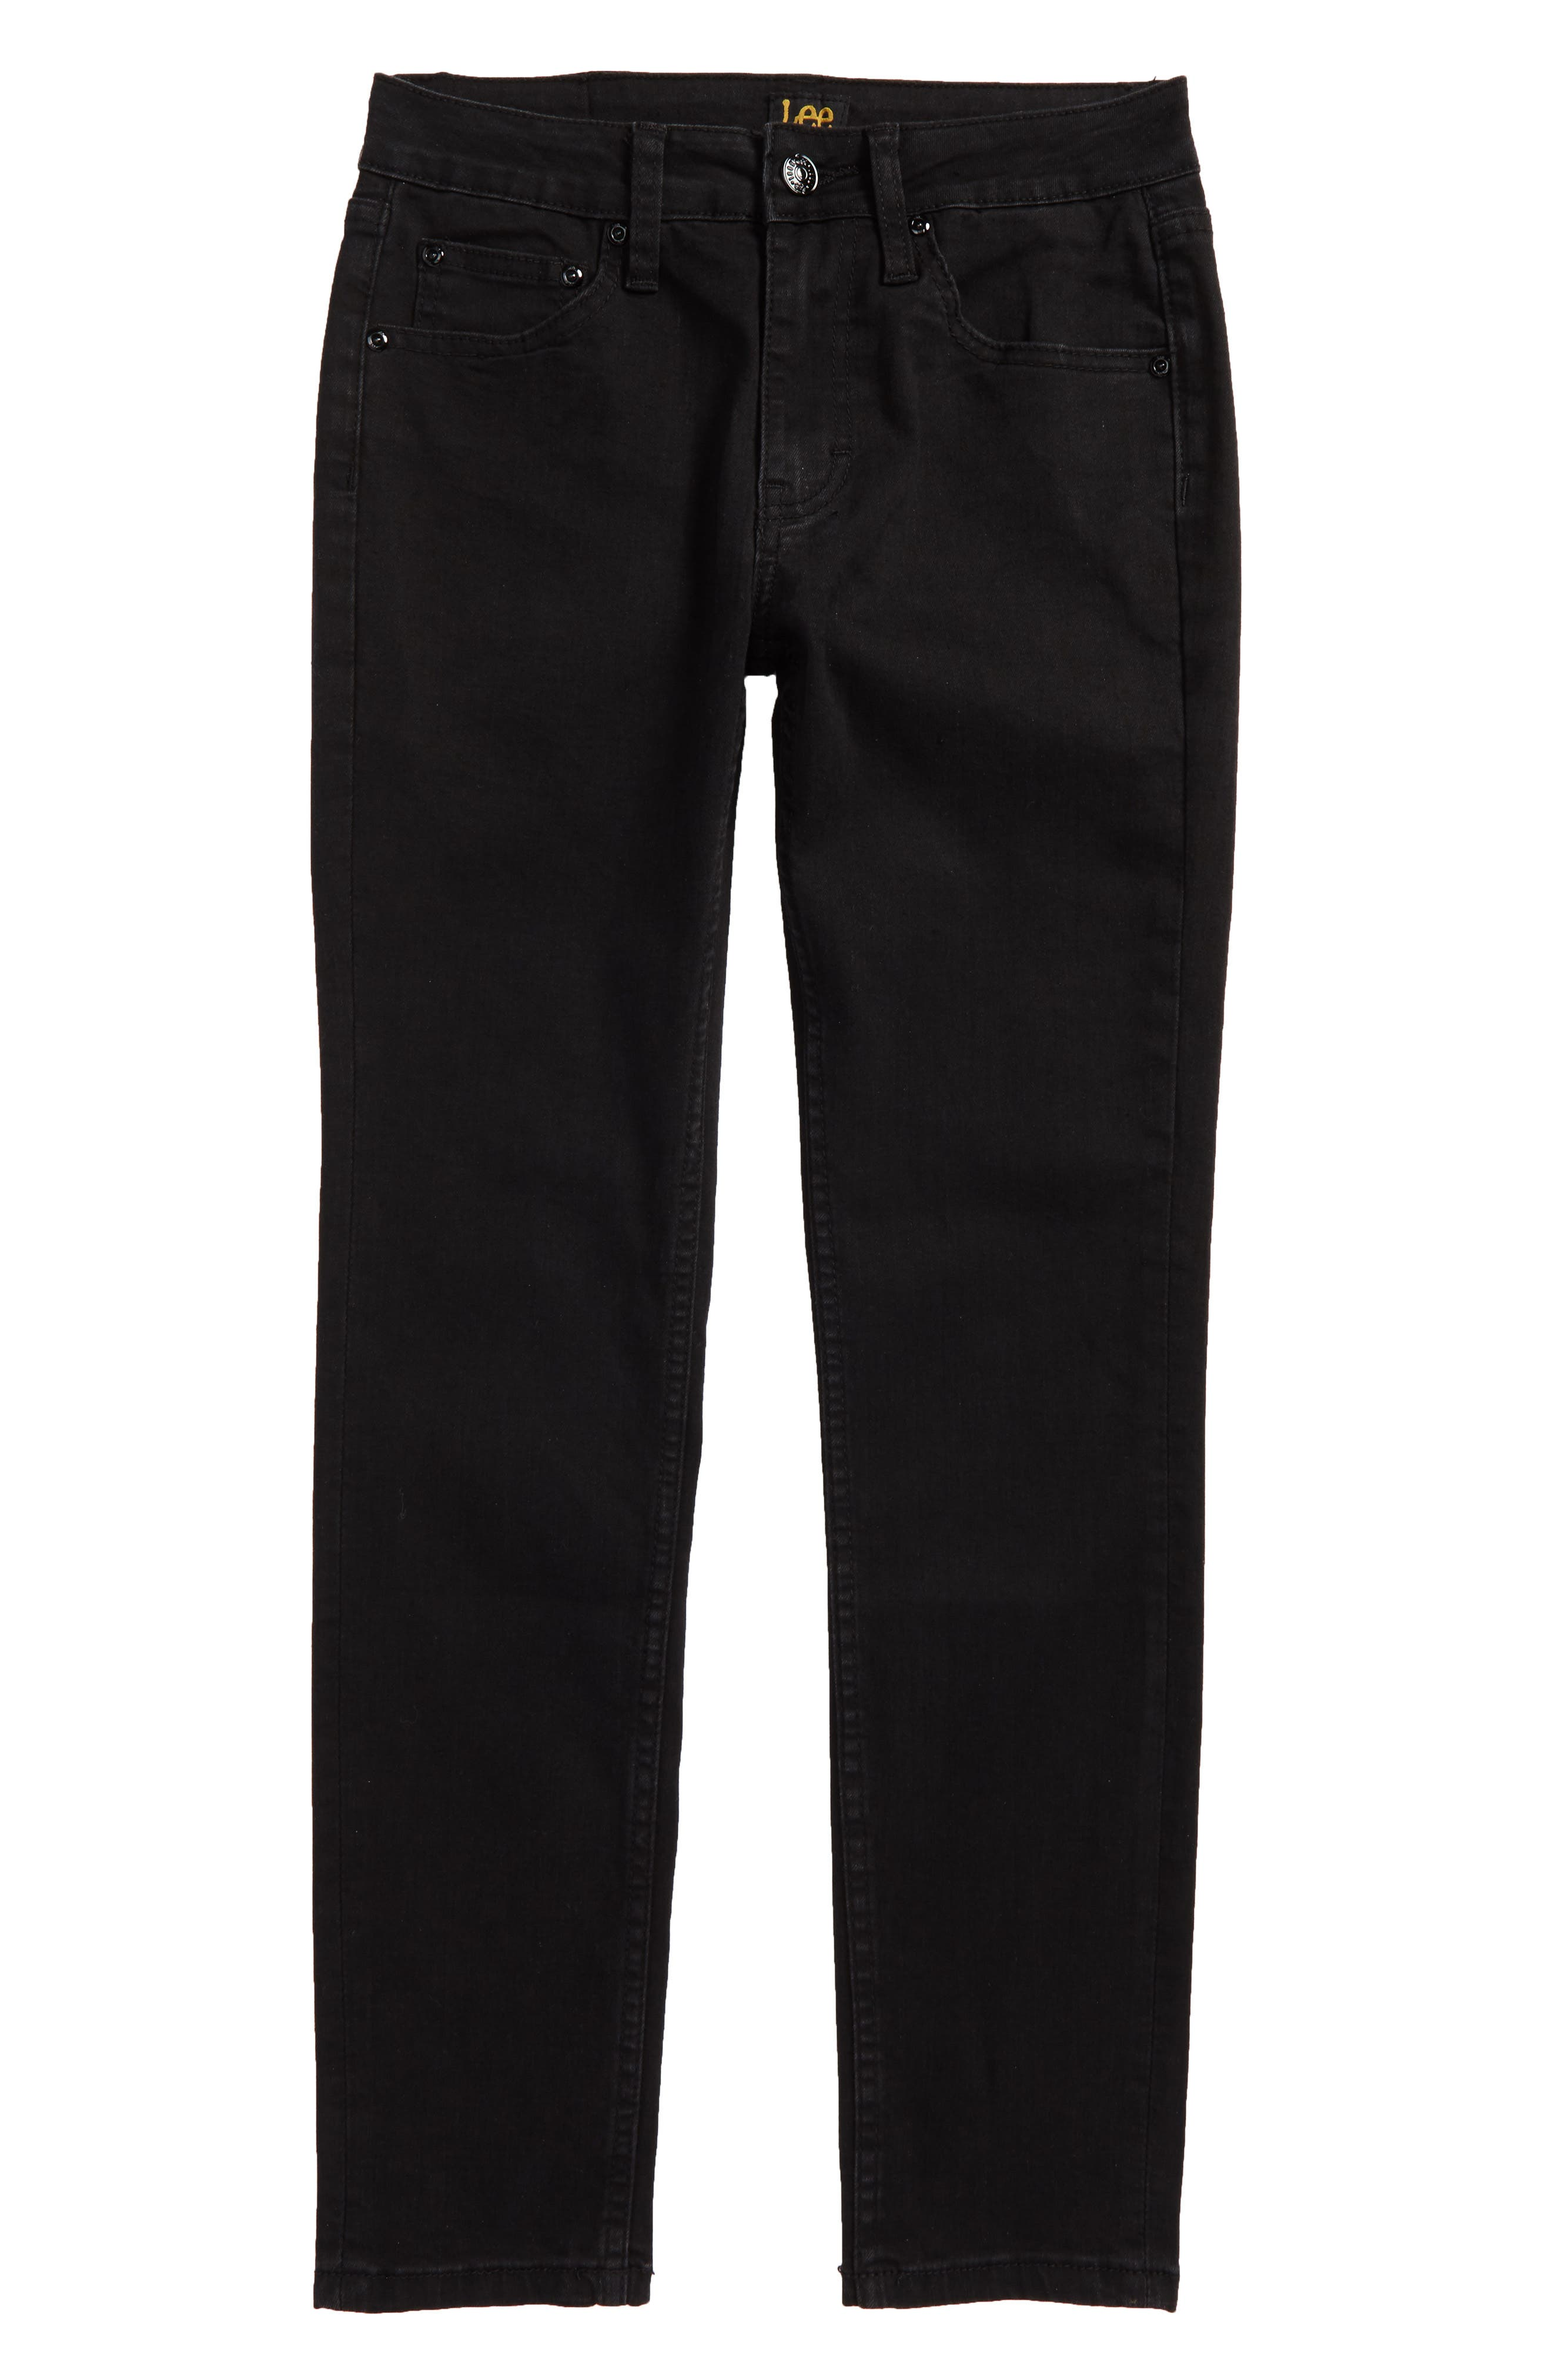 Stretch Skinny Jeans,                             Main thumbnail 1, color,                             011